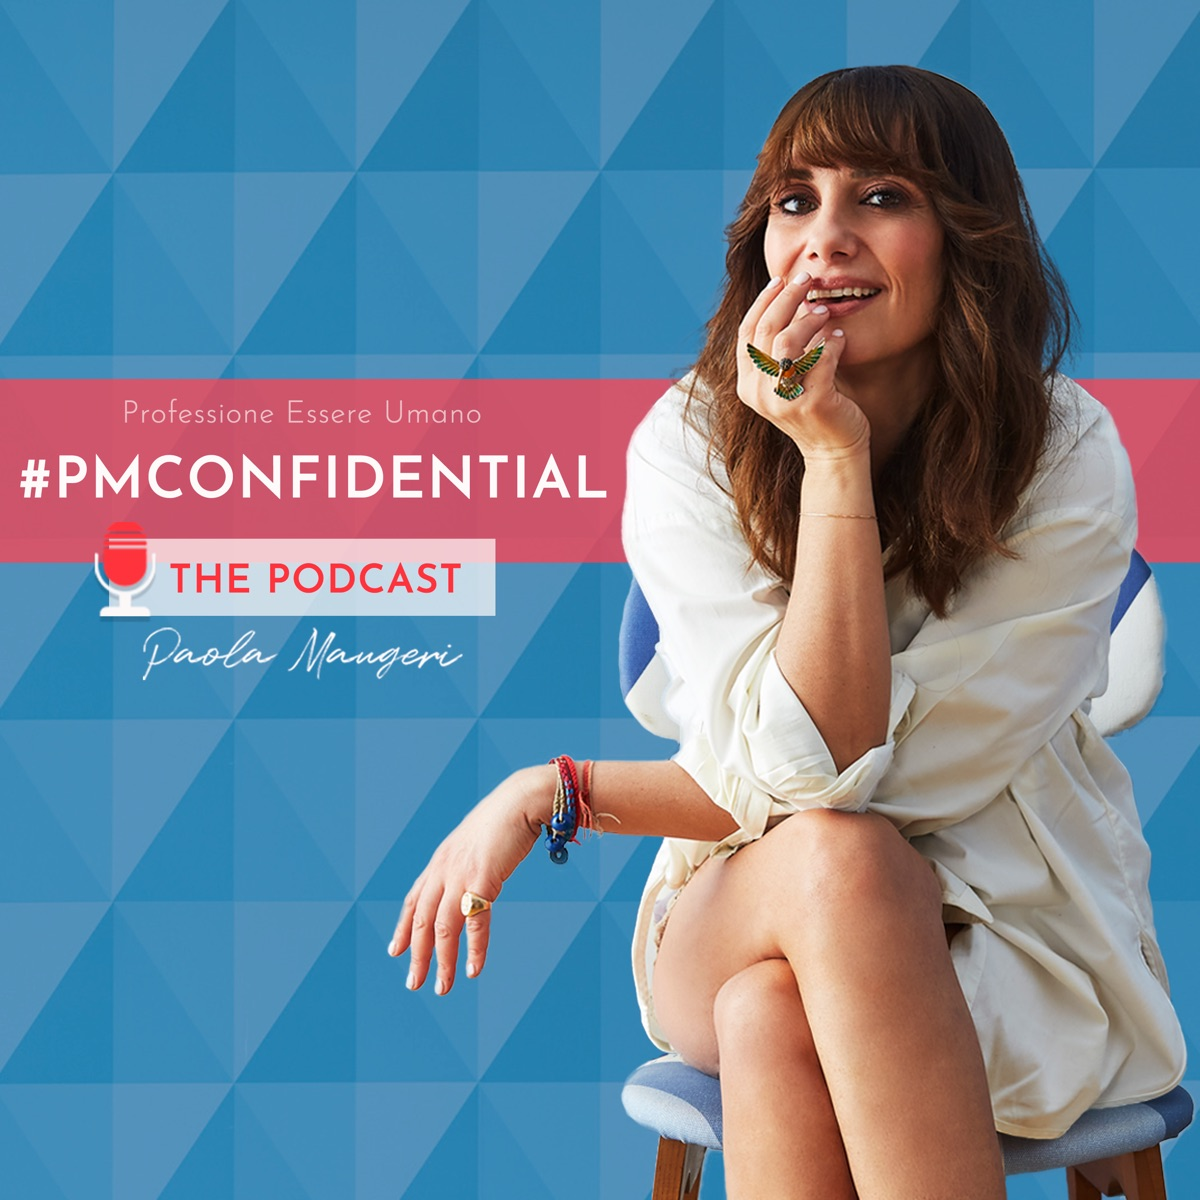 PMConfidential